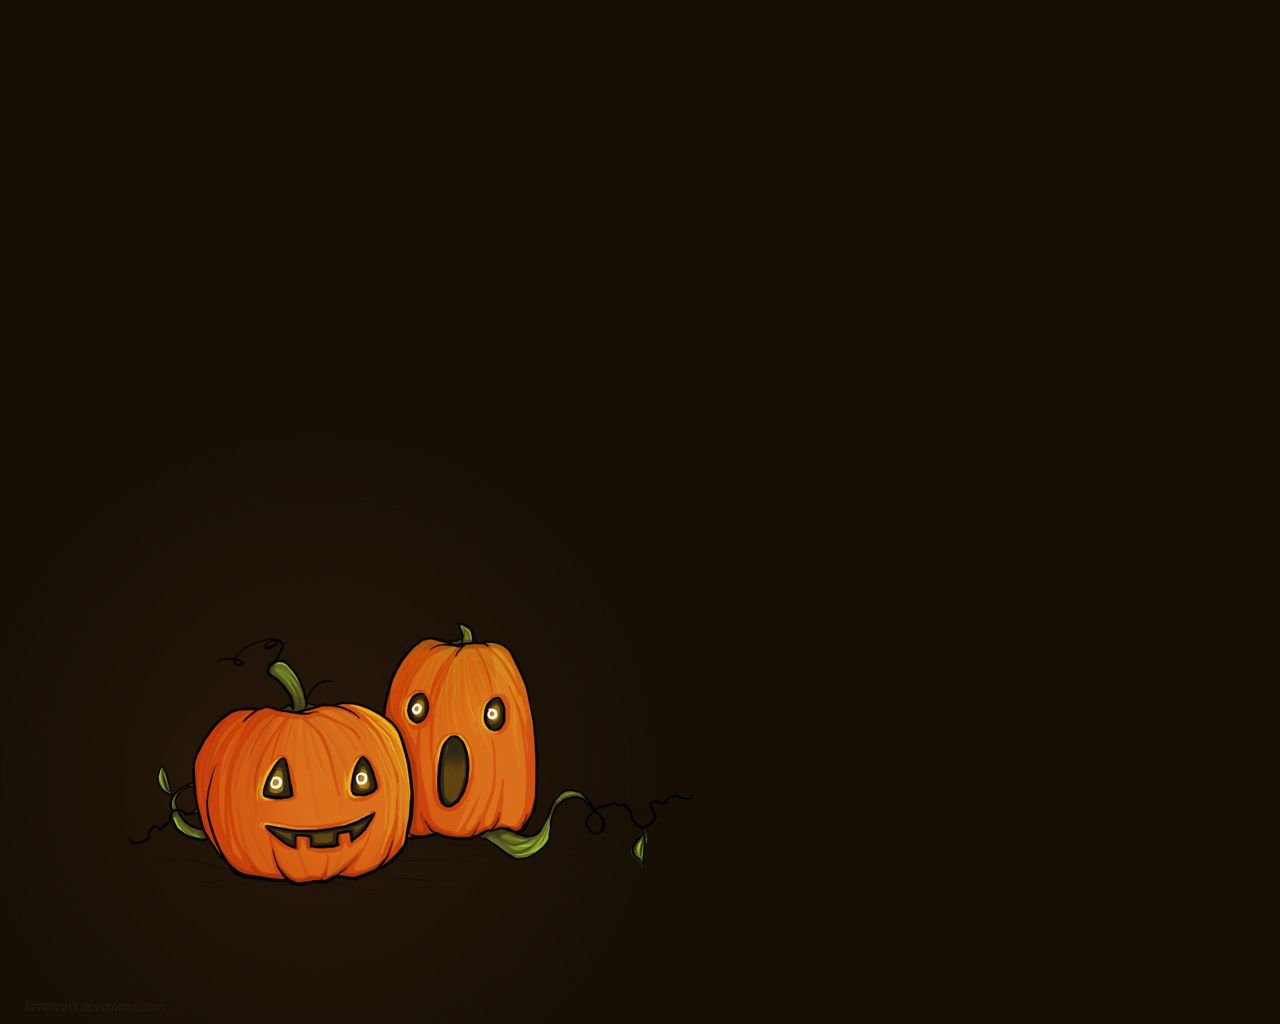 Cute Halloween Desktop Wallpapers Halloween Desktop Wallpaper Pumpkin Wallpaper Halloween Wallpaper